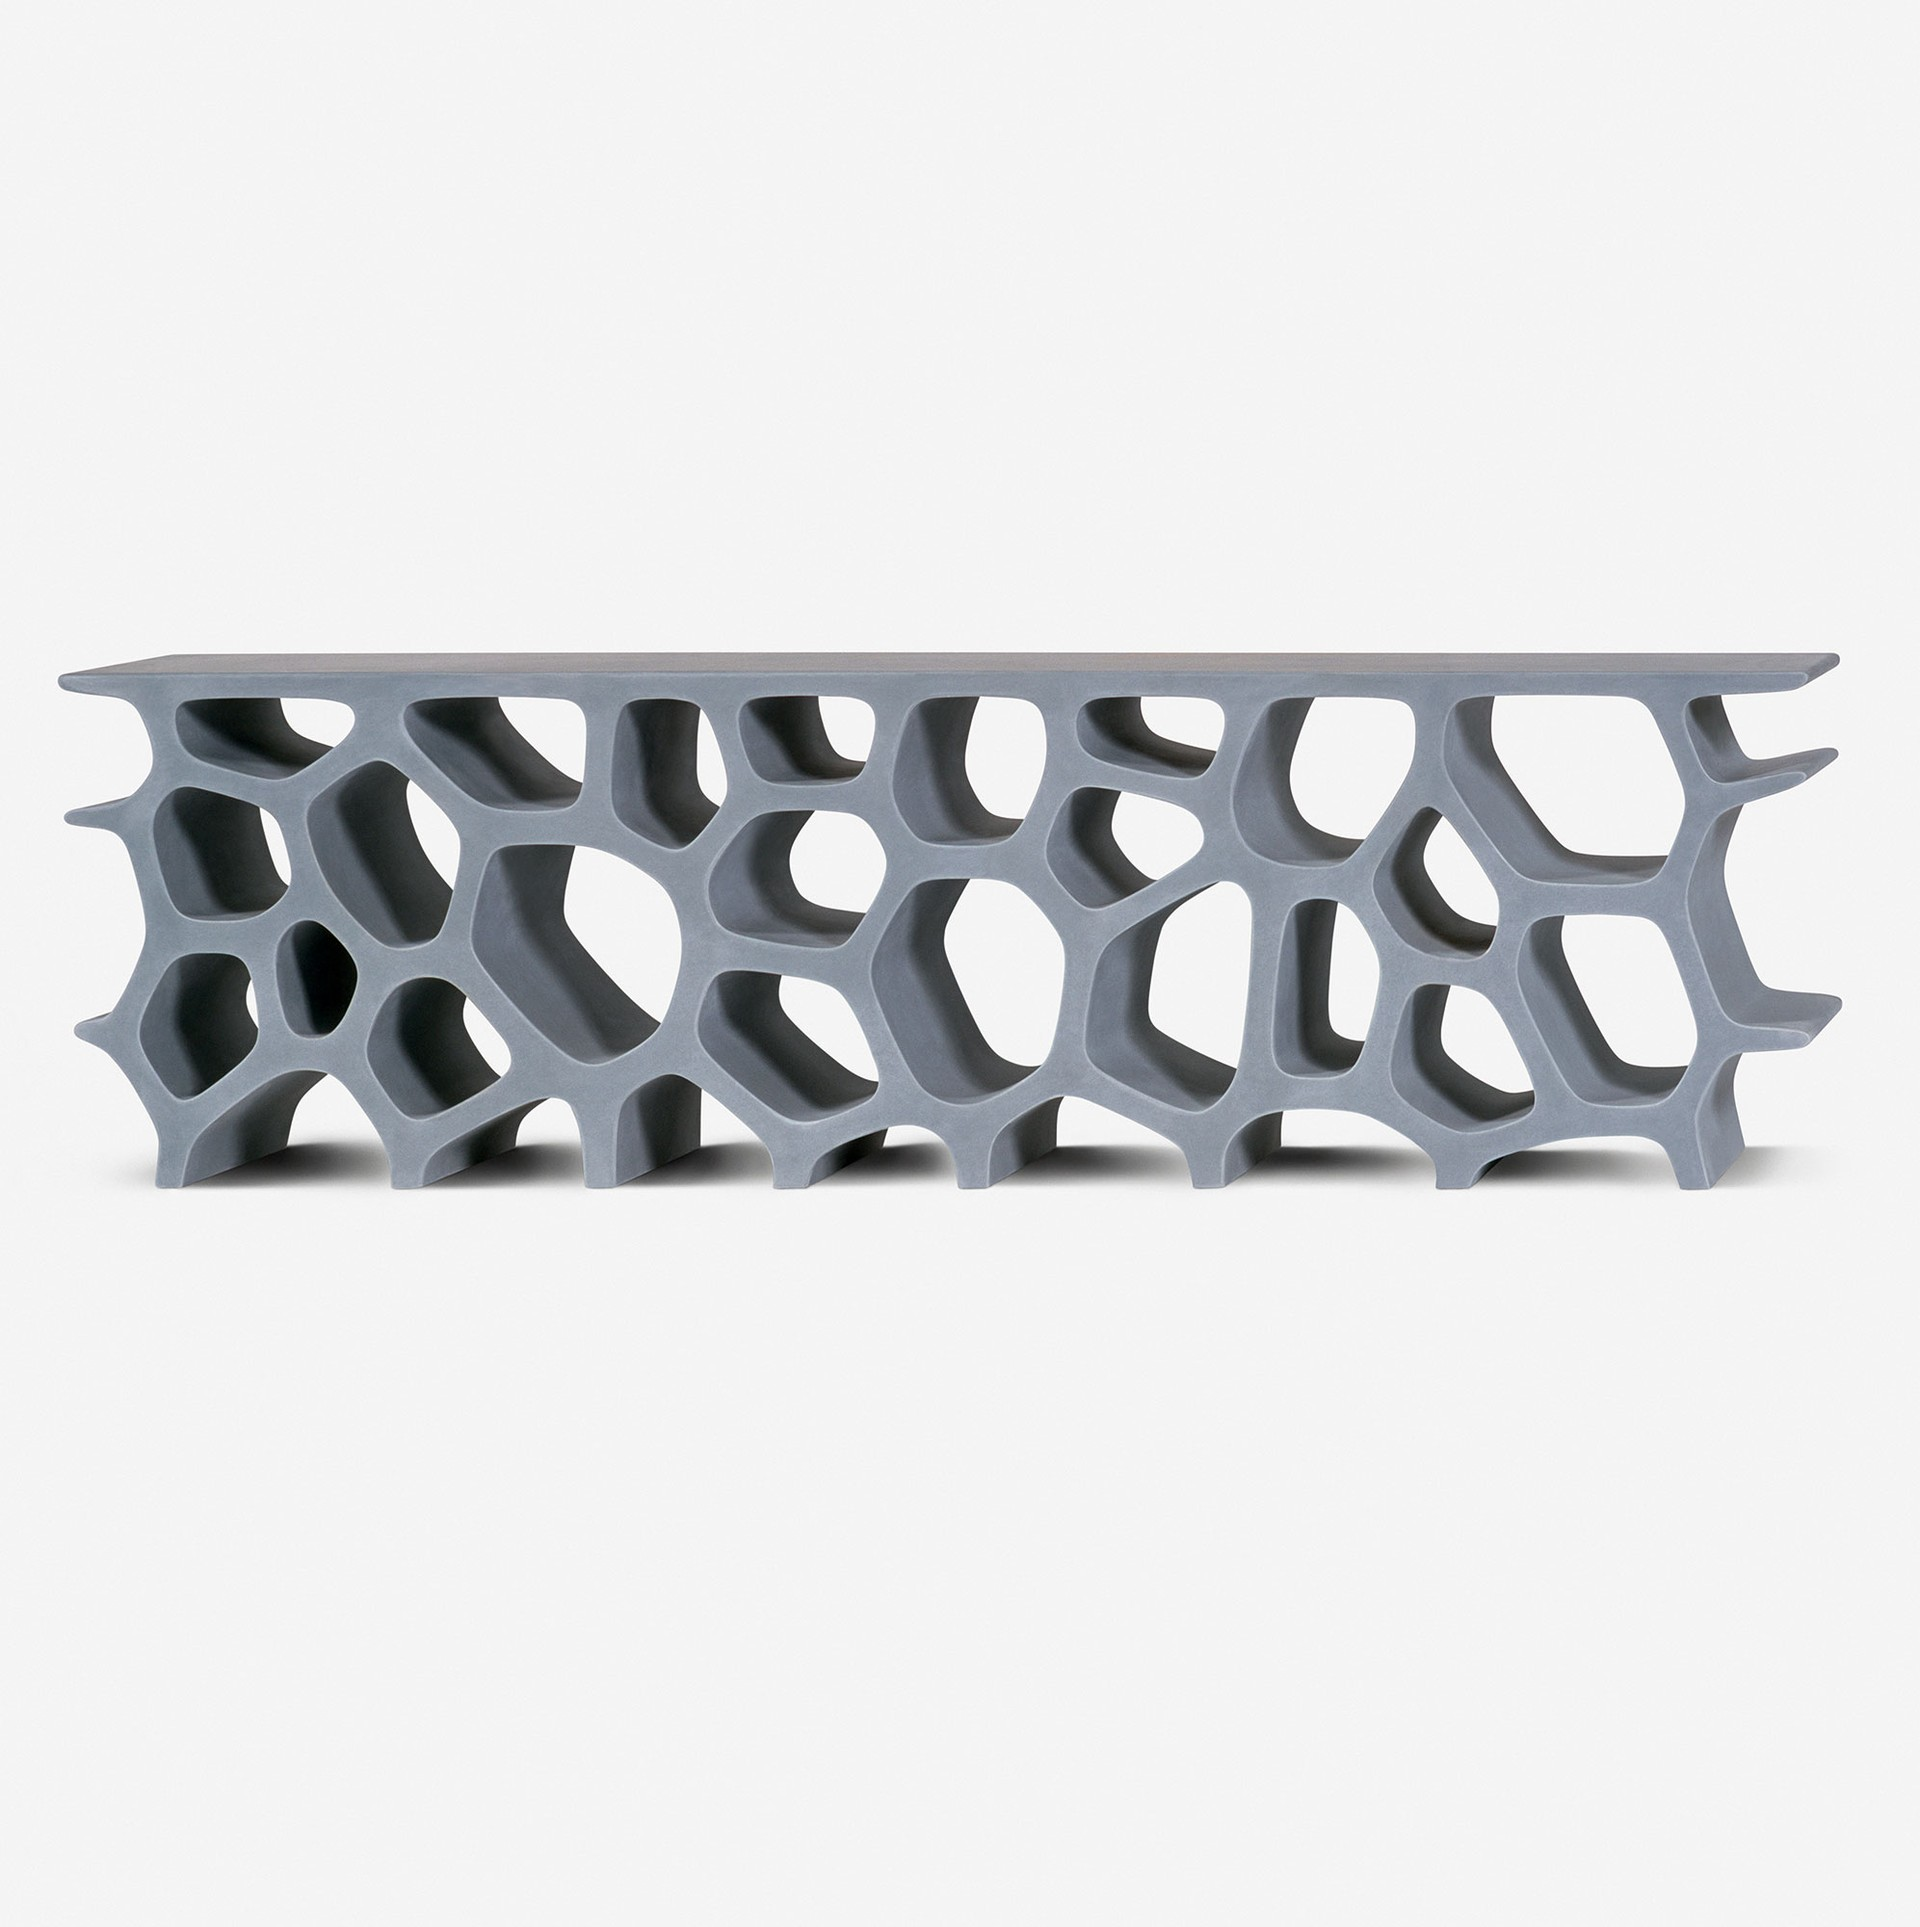 Marc Newson - One of the Best Contemporary Designers in the World - Low Voronoi Shelf marc newson Marc Newson: One of the Best Contemporary Designers in the World Marc Newson One of the Best Contemporary Designers in the World Low Voronoi Shelf